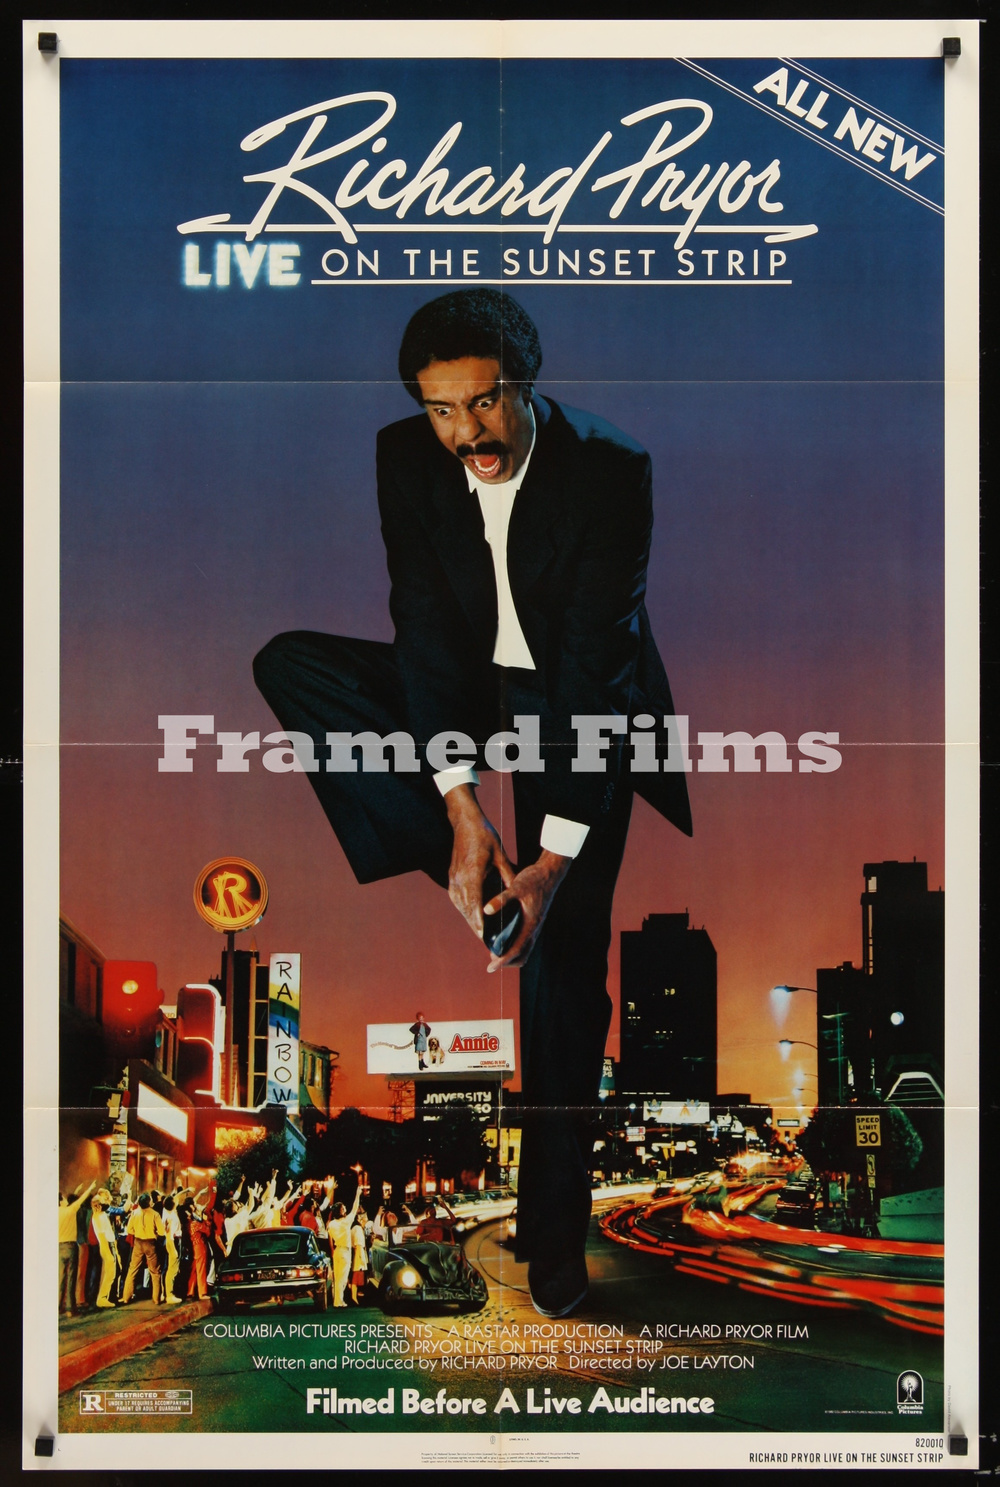 richard_pryor_live_on_the_sunset_strip_NZ03101_L.jpg